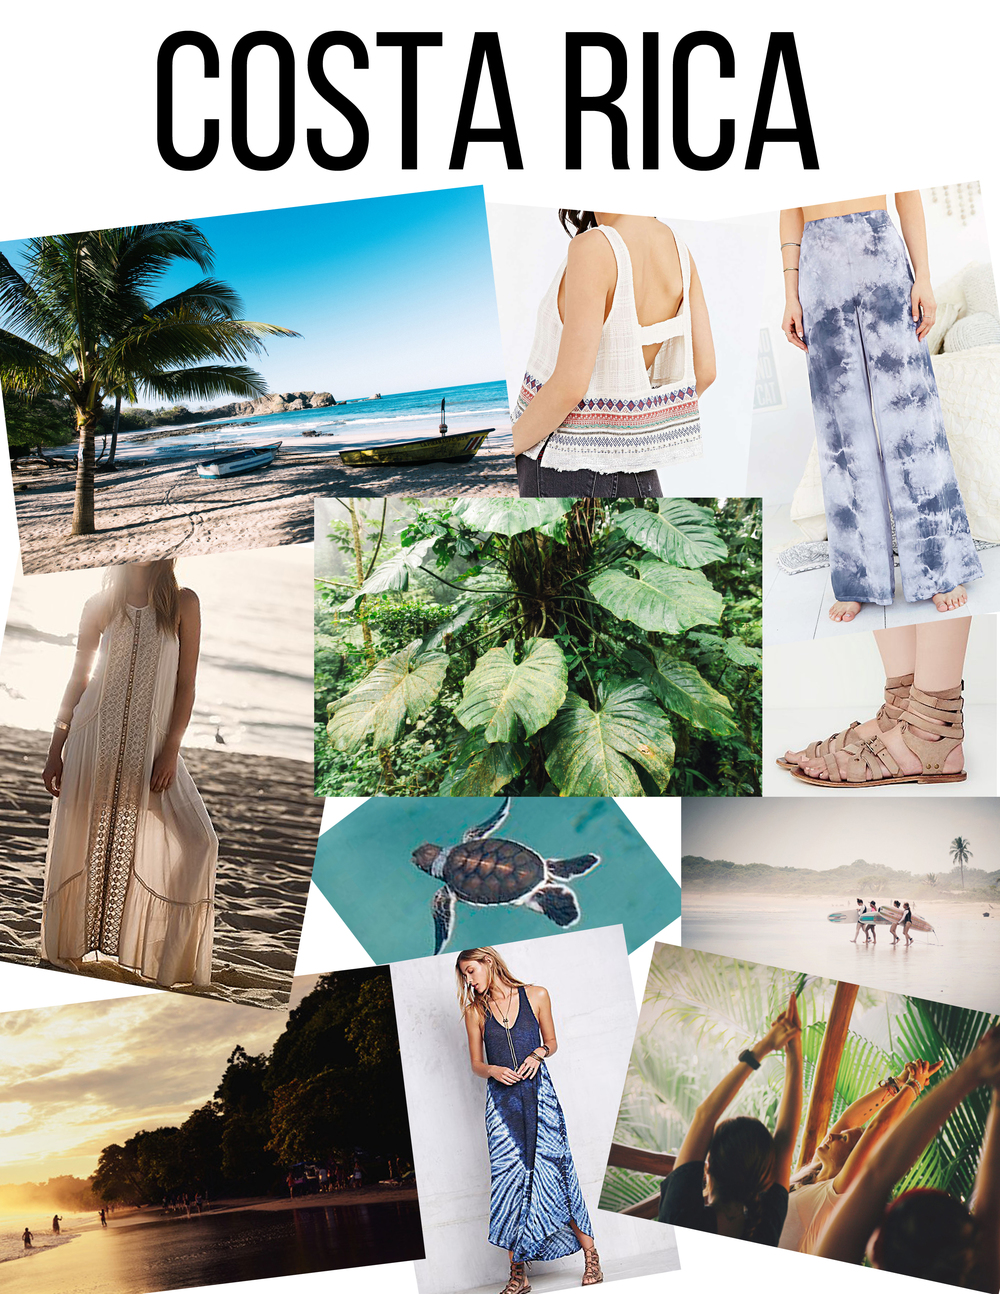 Beach / Tank /  Pants / Dress / Leaves / Sandals / Turtle / Surf / Sunset / Dress / Yoga